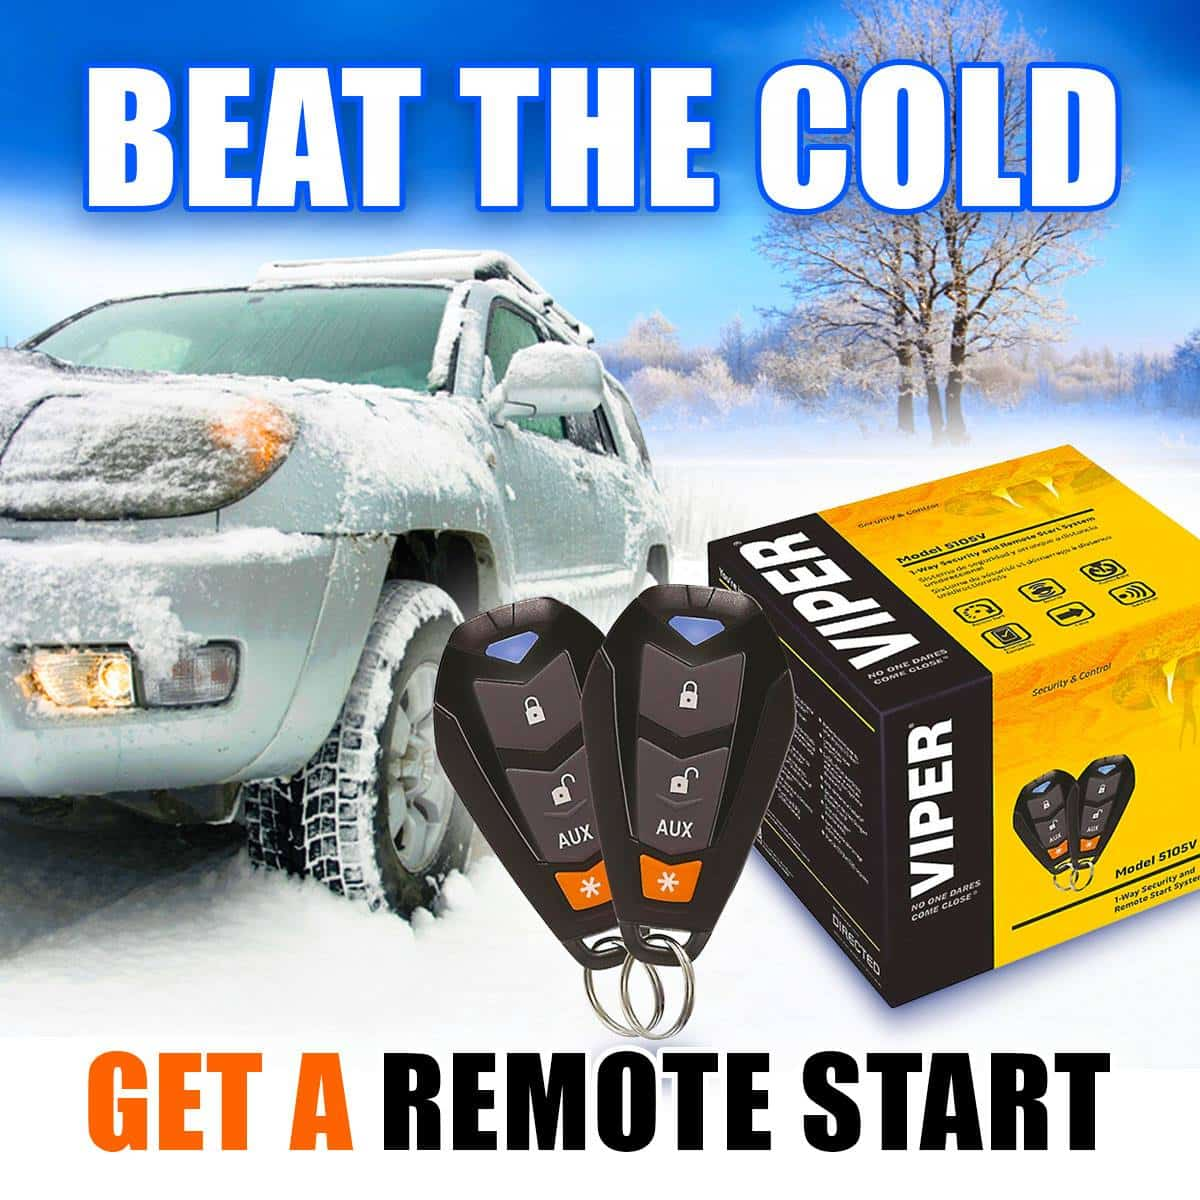 We sell and install Viper remote starters